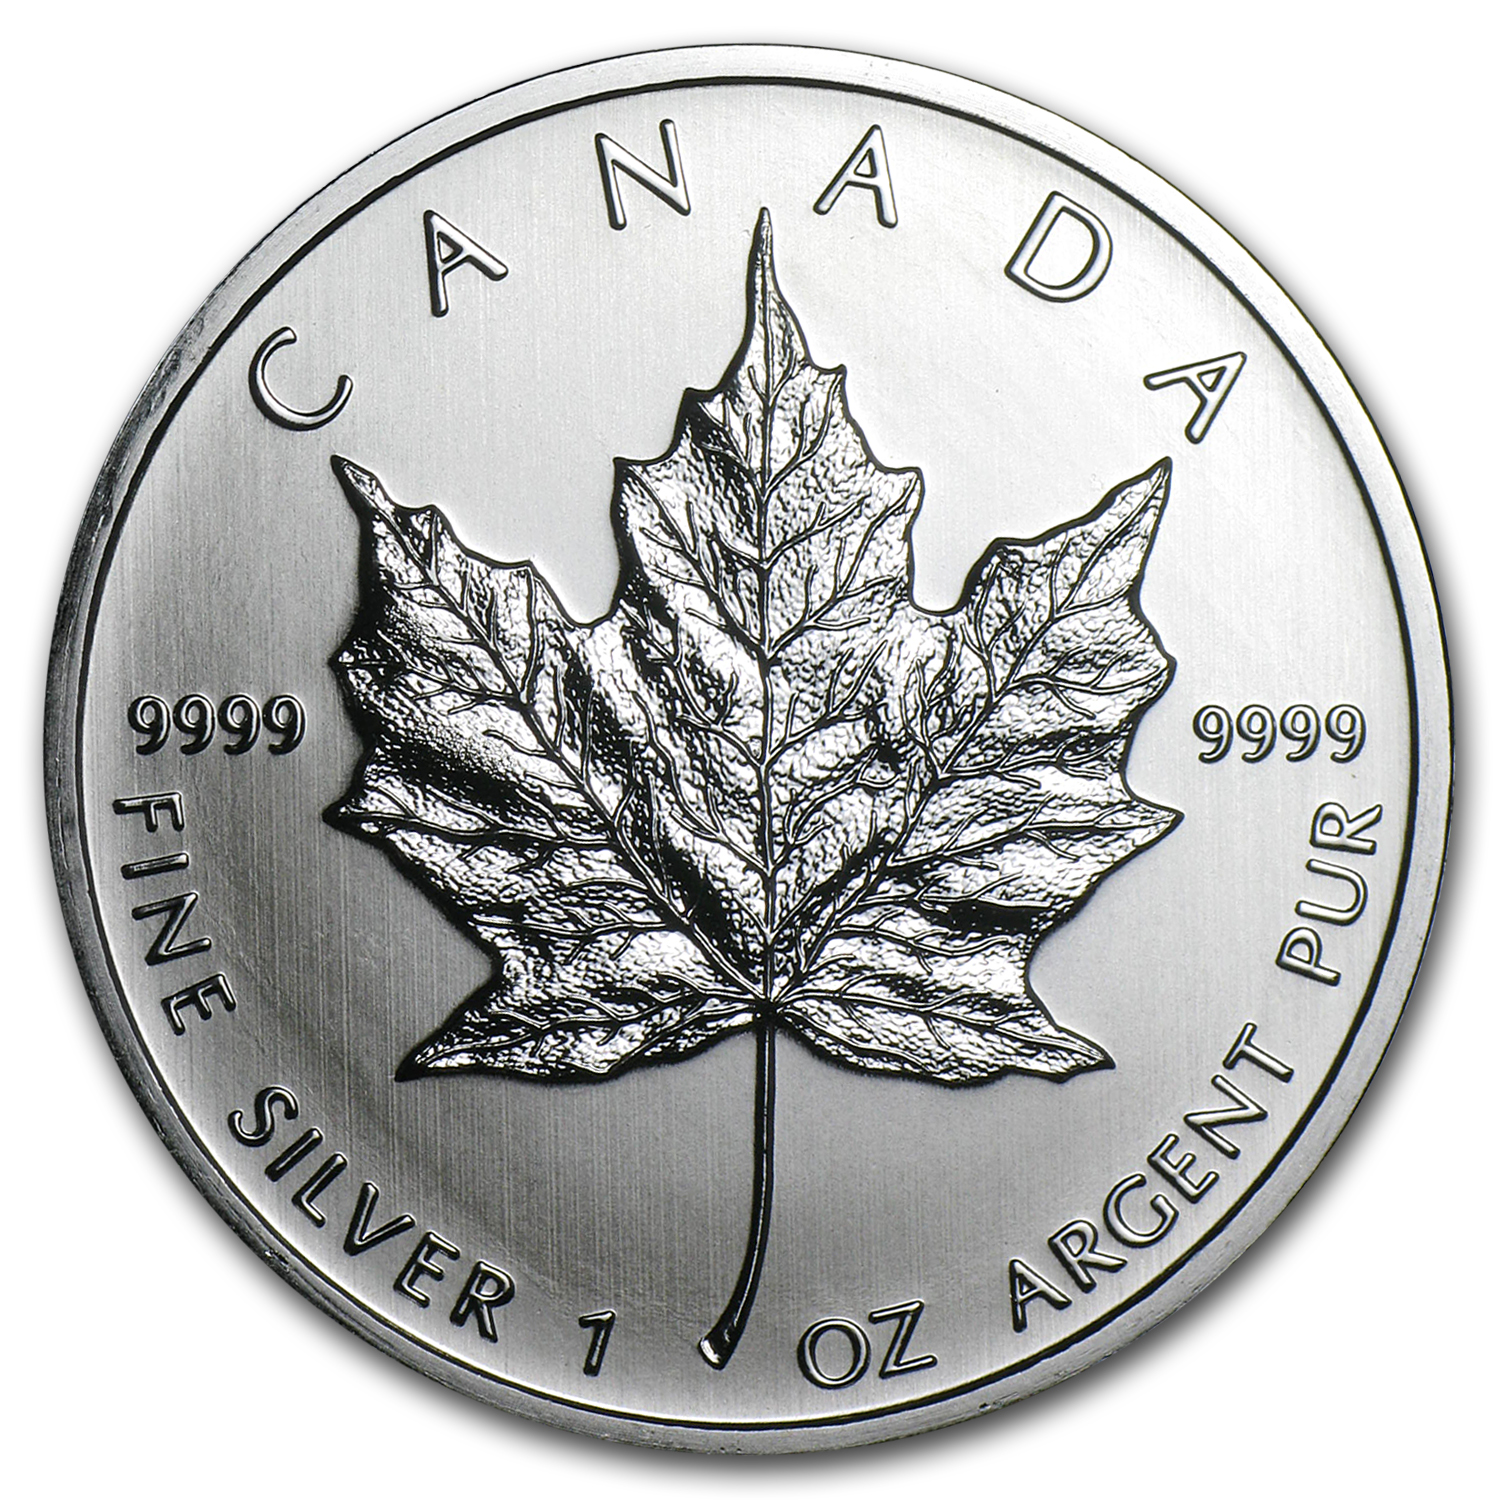 2011 Canada 1 Oz Silver Maple Leaf Bu Silver Maple Leafs